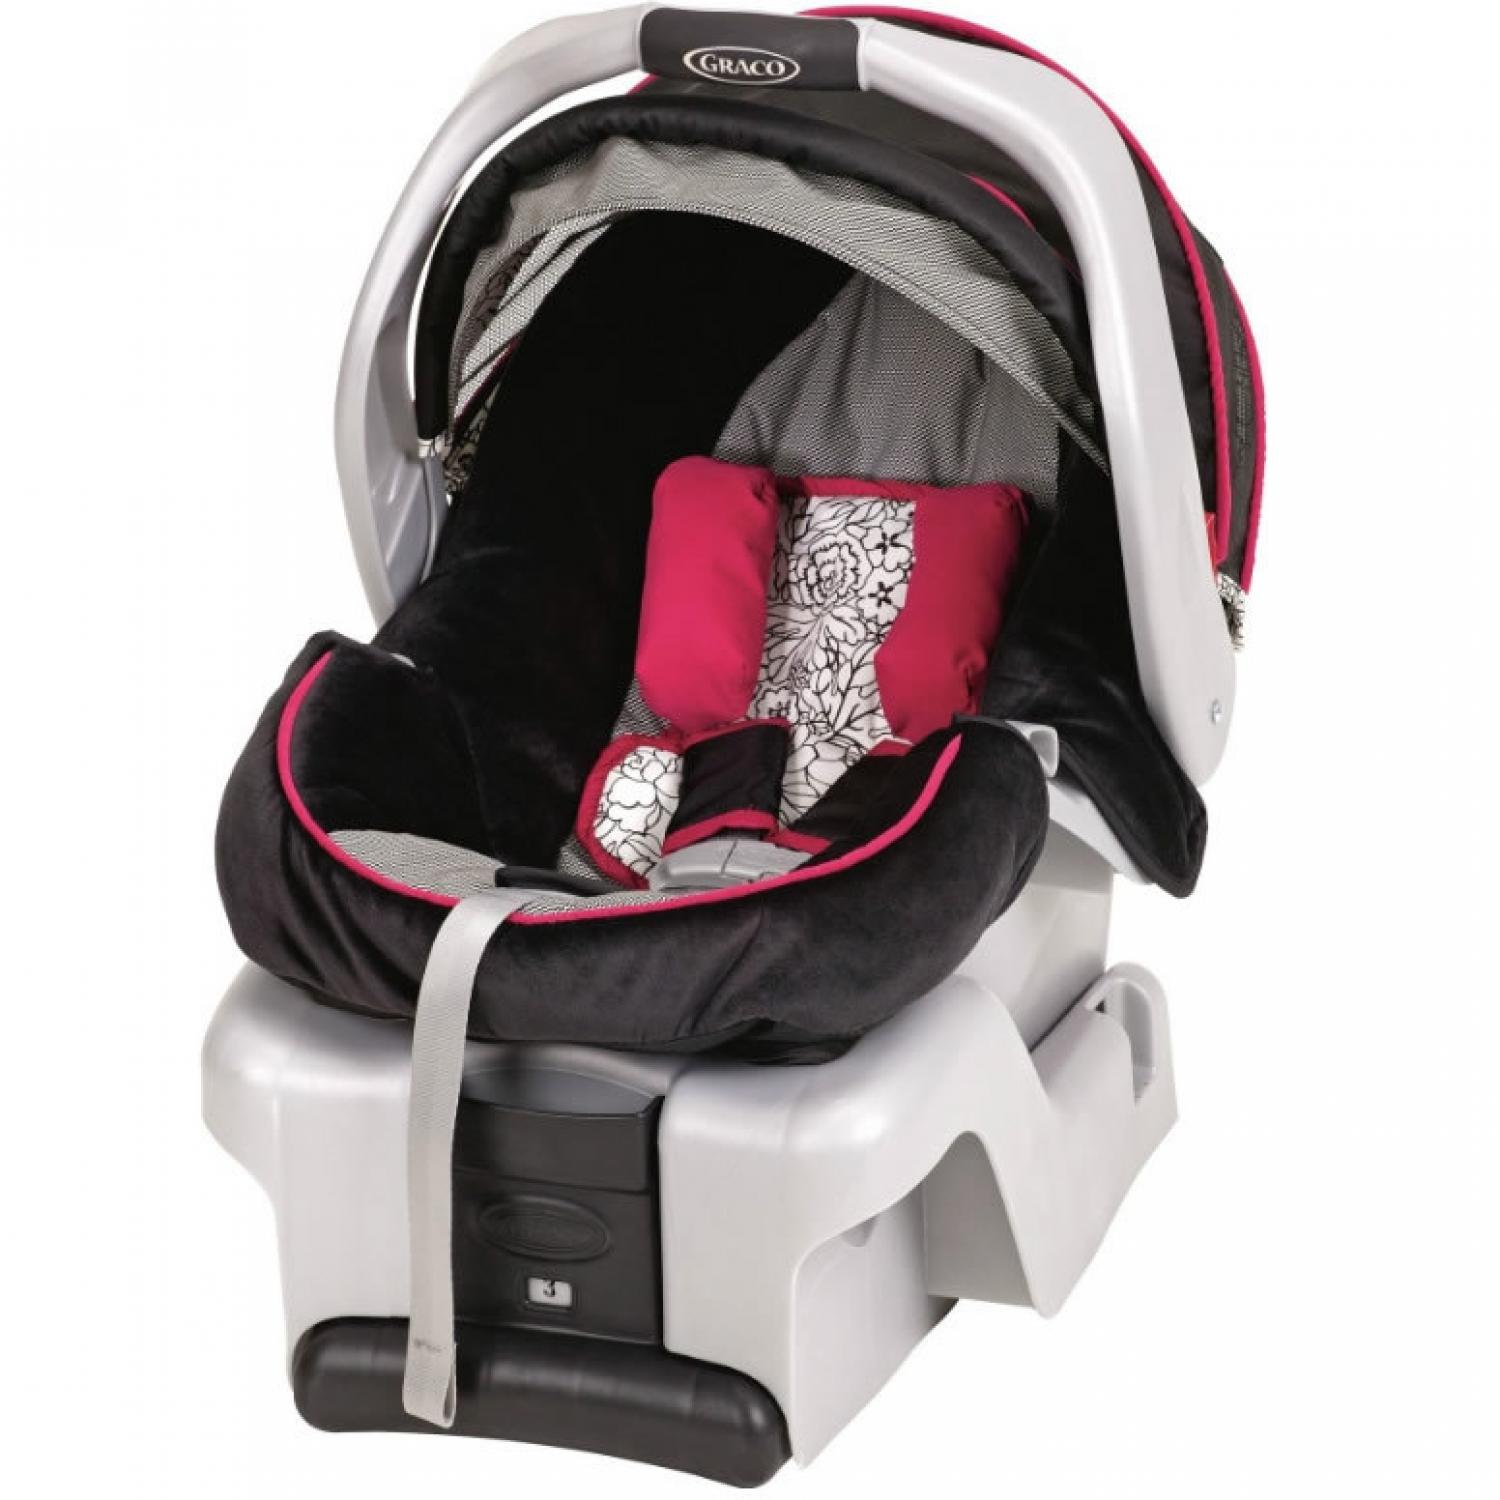 graco recalls 1 9 million harness buckles on car seats parenting. Black Bedroom Furniture Sets. Home Design Ideas